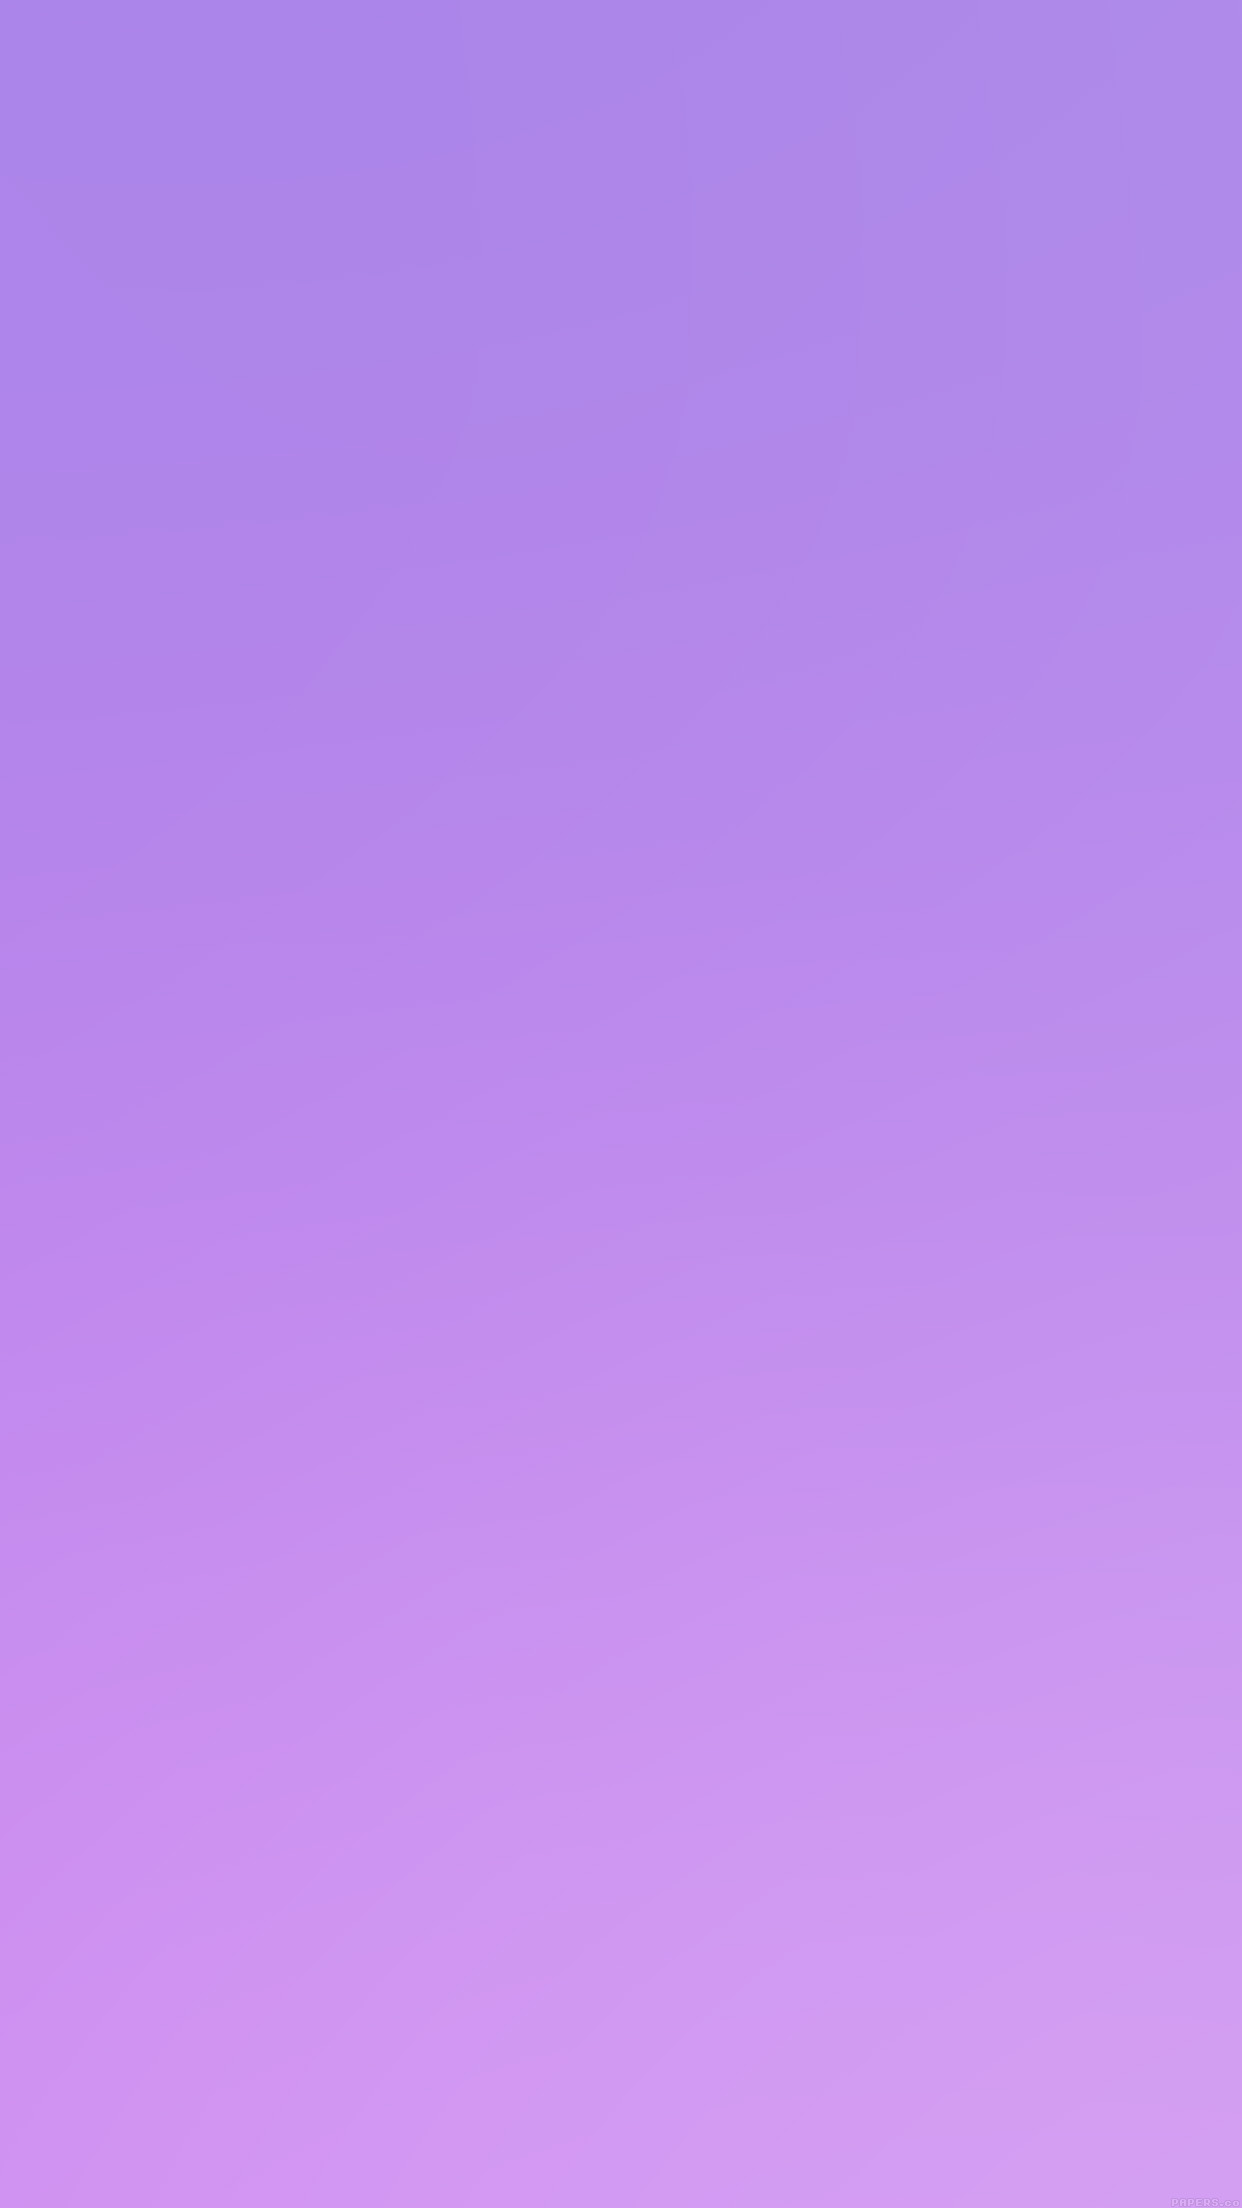 3d Wallpaper Android Parallax Se53 Baby Purple Gradation Blur